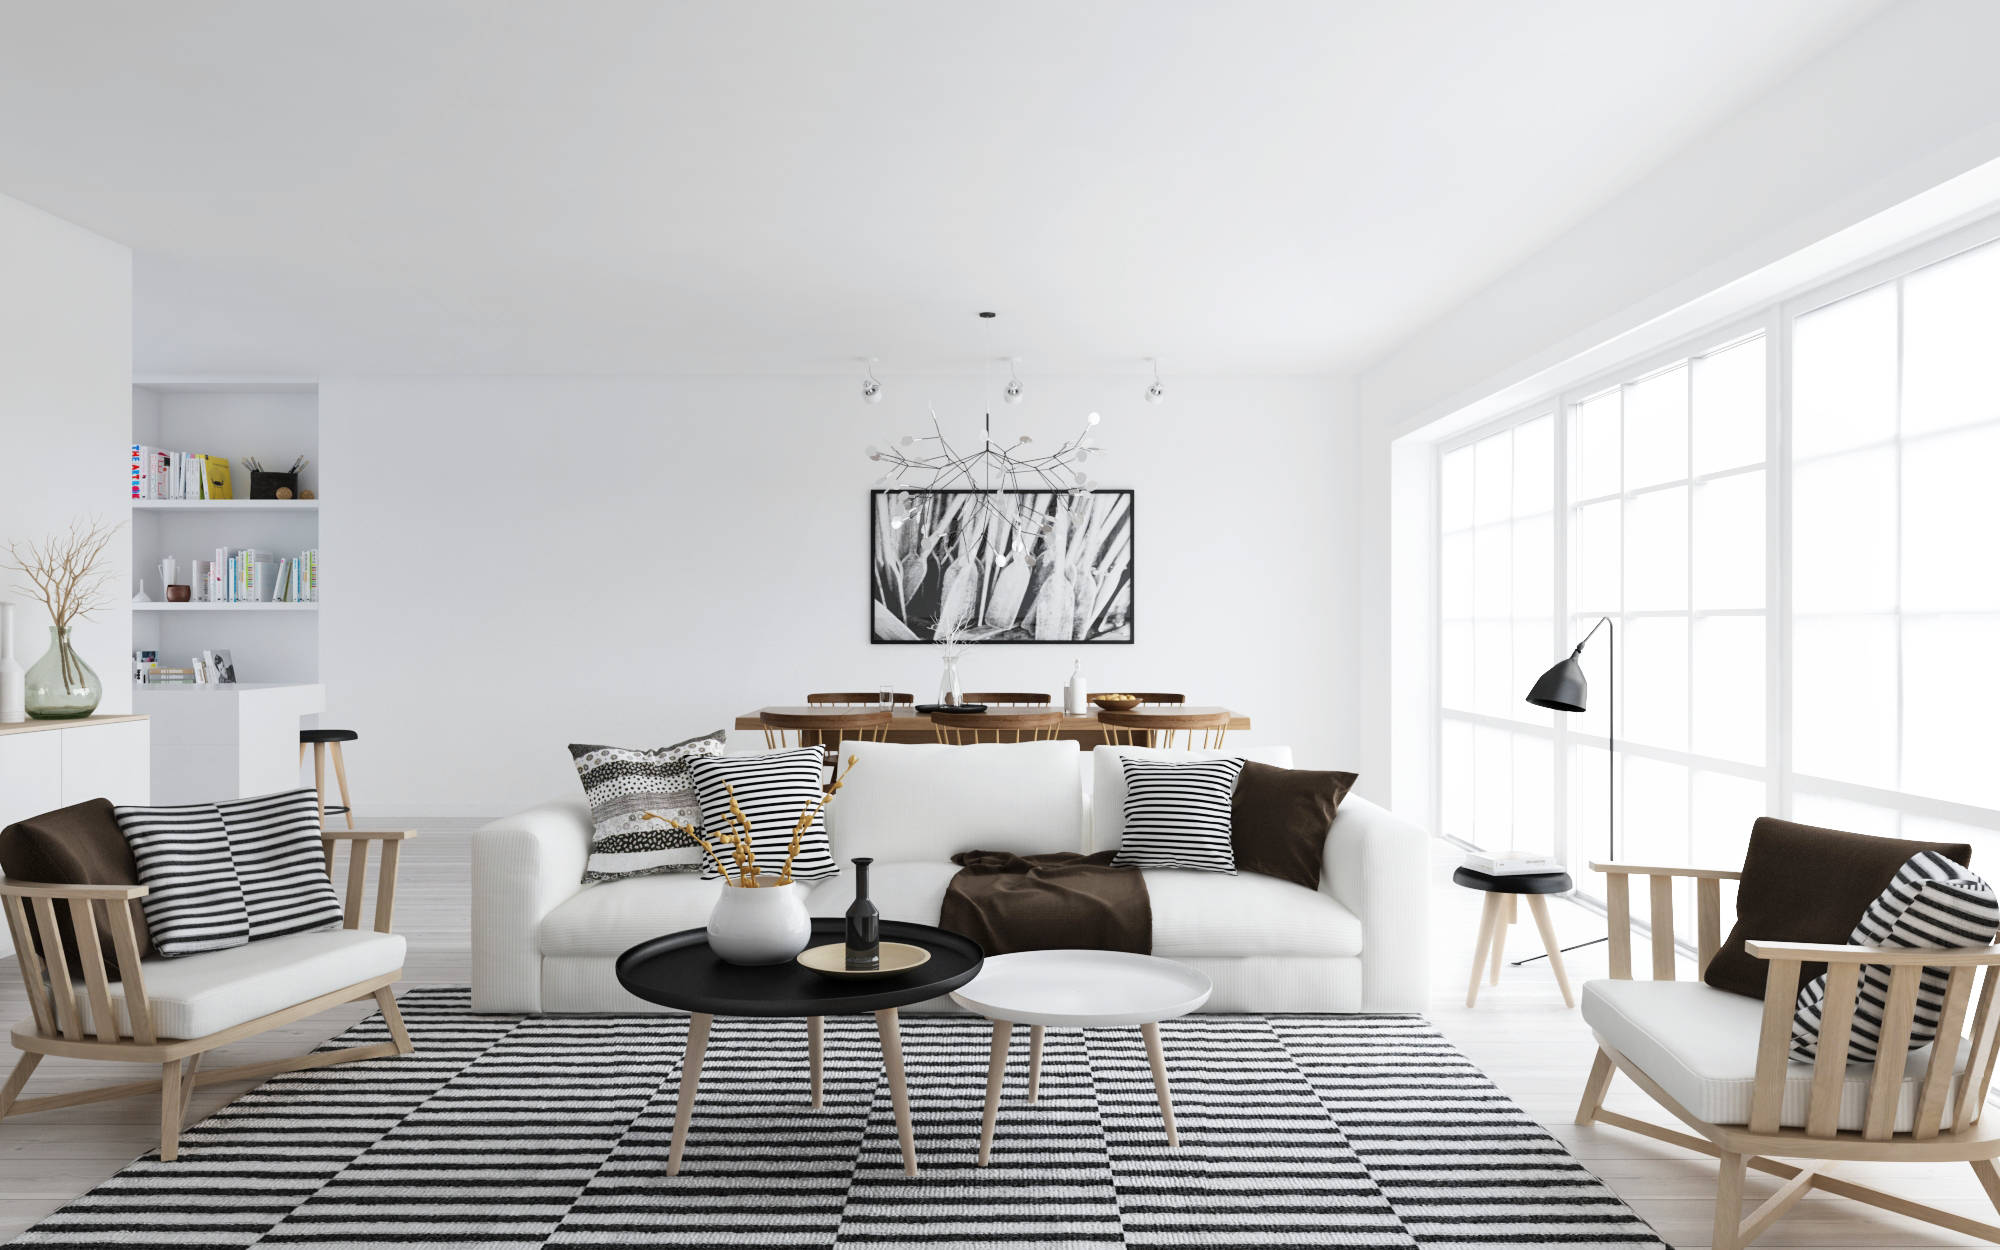 Atdesign nordic style living in monochrome interior for Monochrome interior design ideas